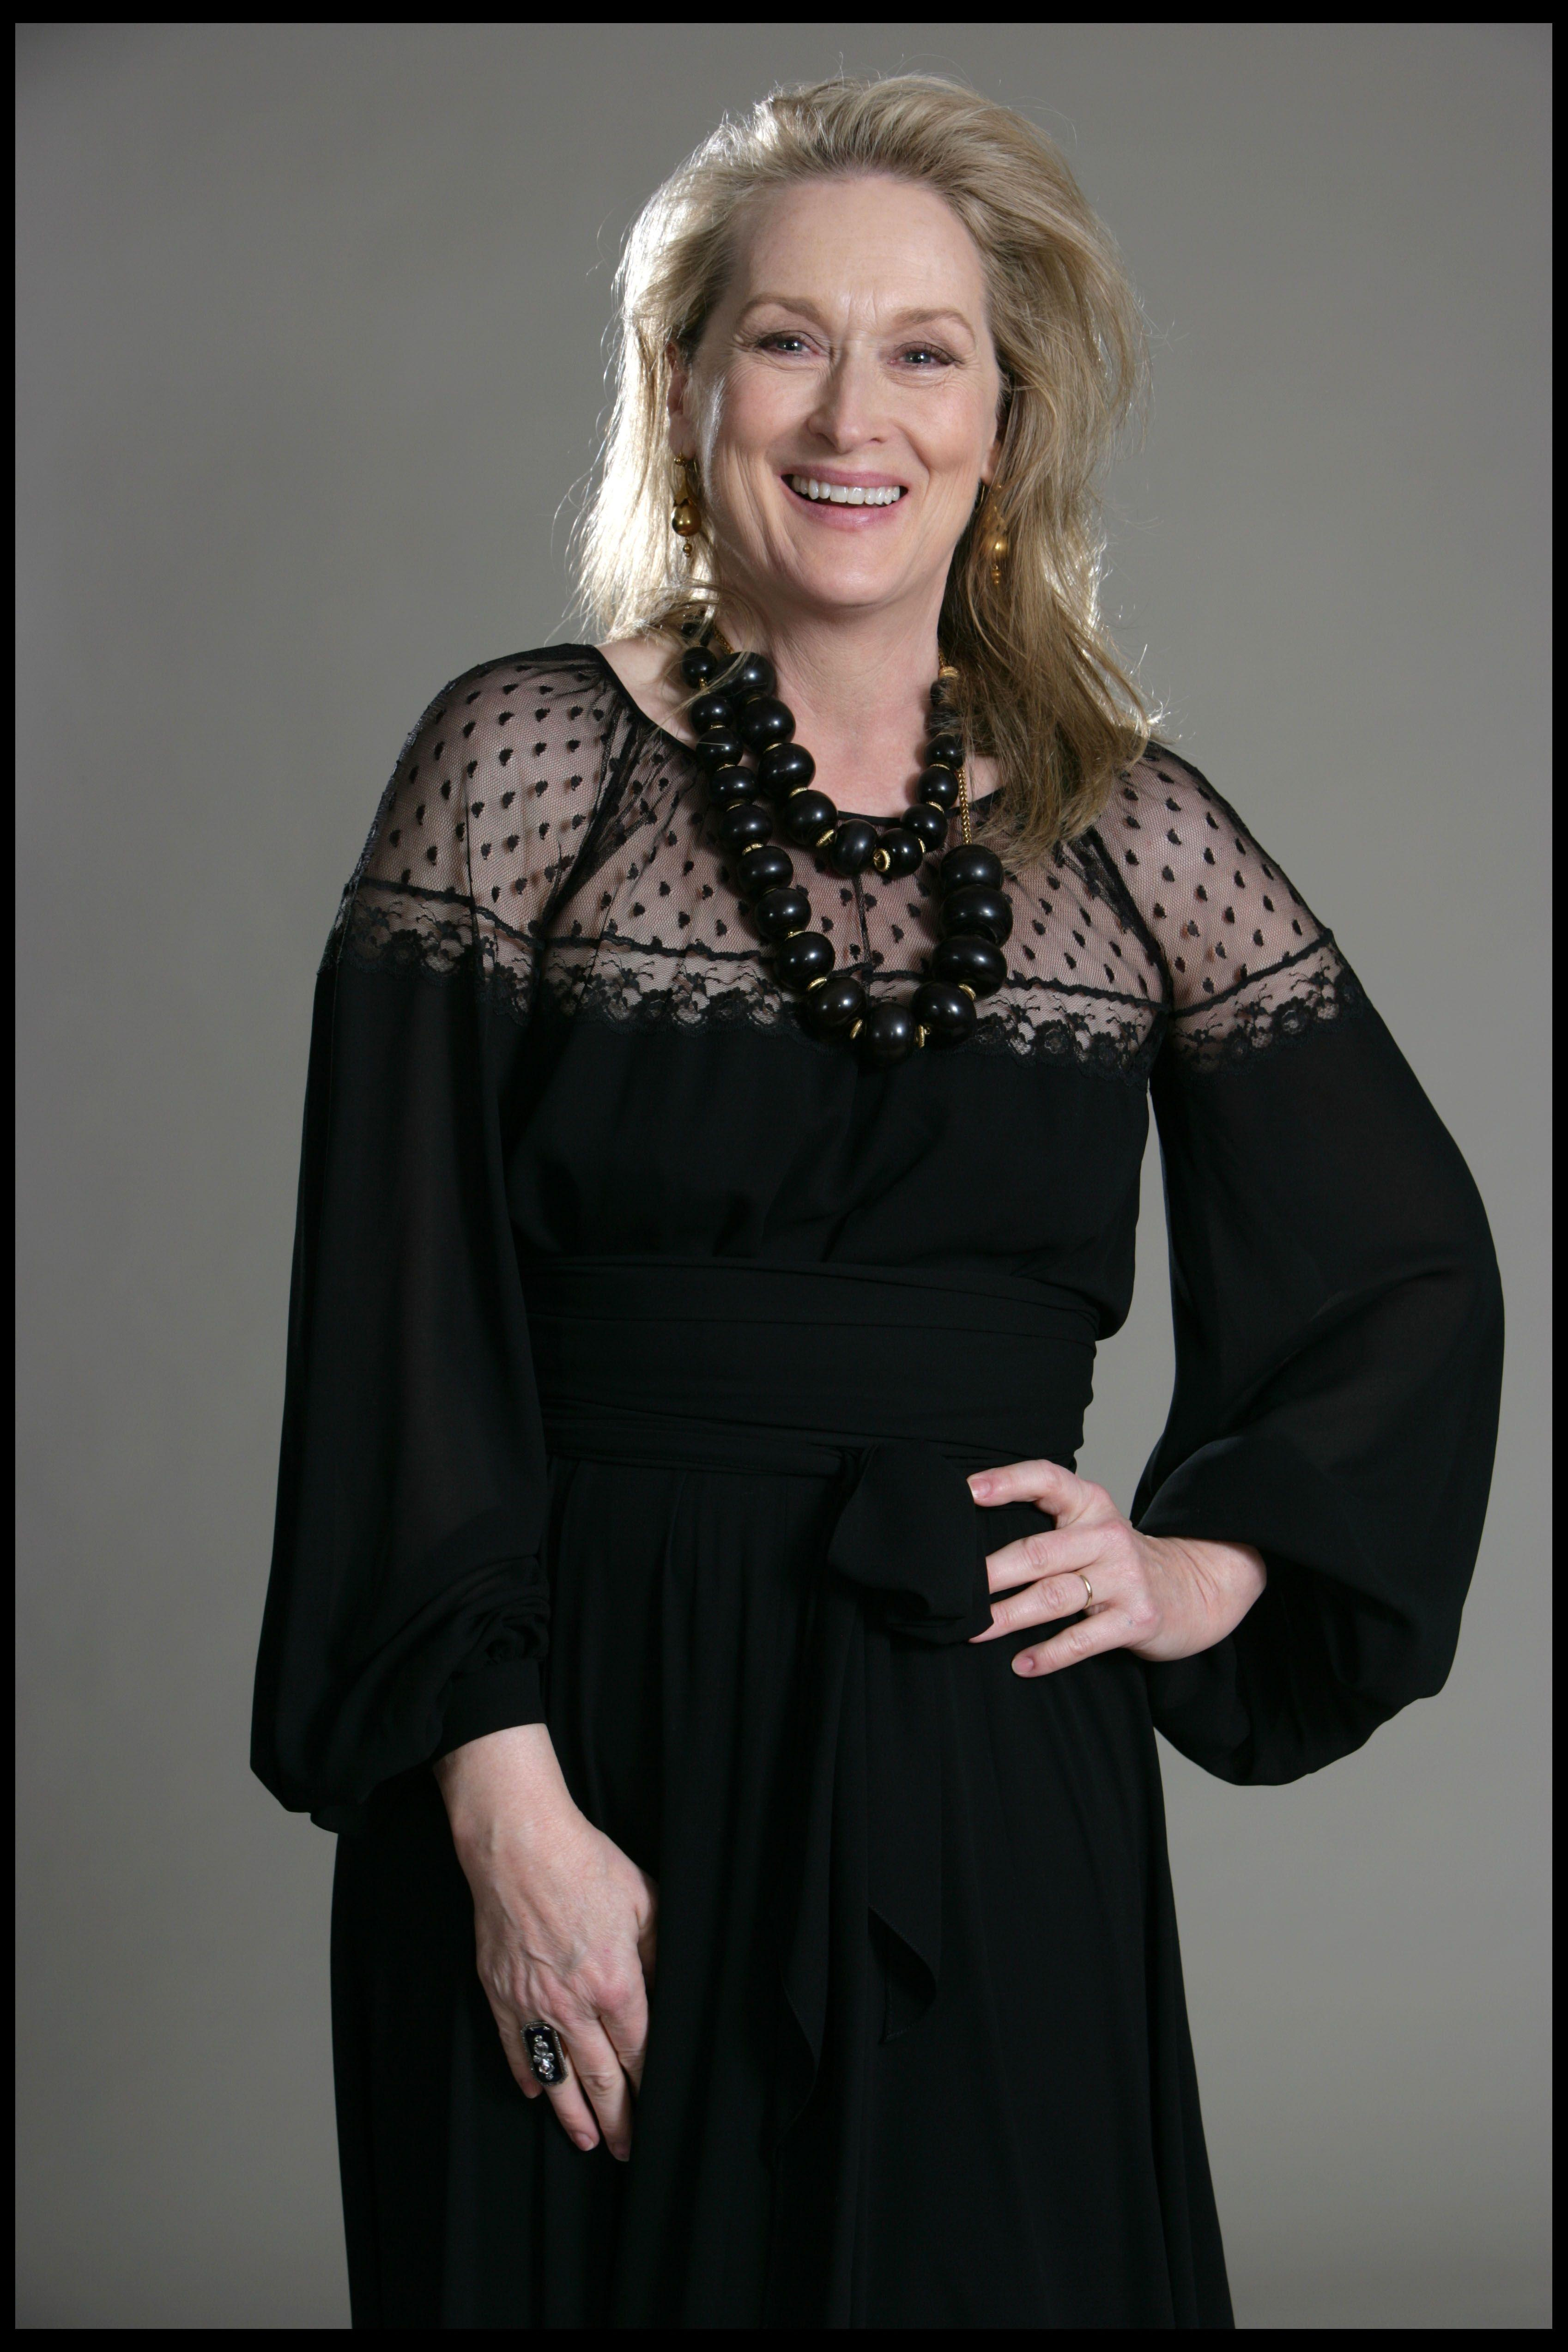 Meryl Streep photo 186 of 400 pics, wallpaper - photo #473842 ...